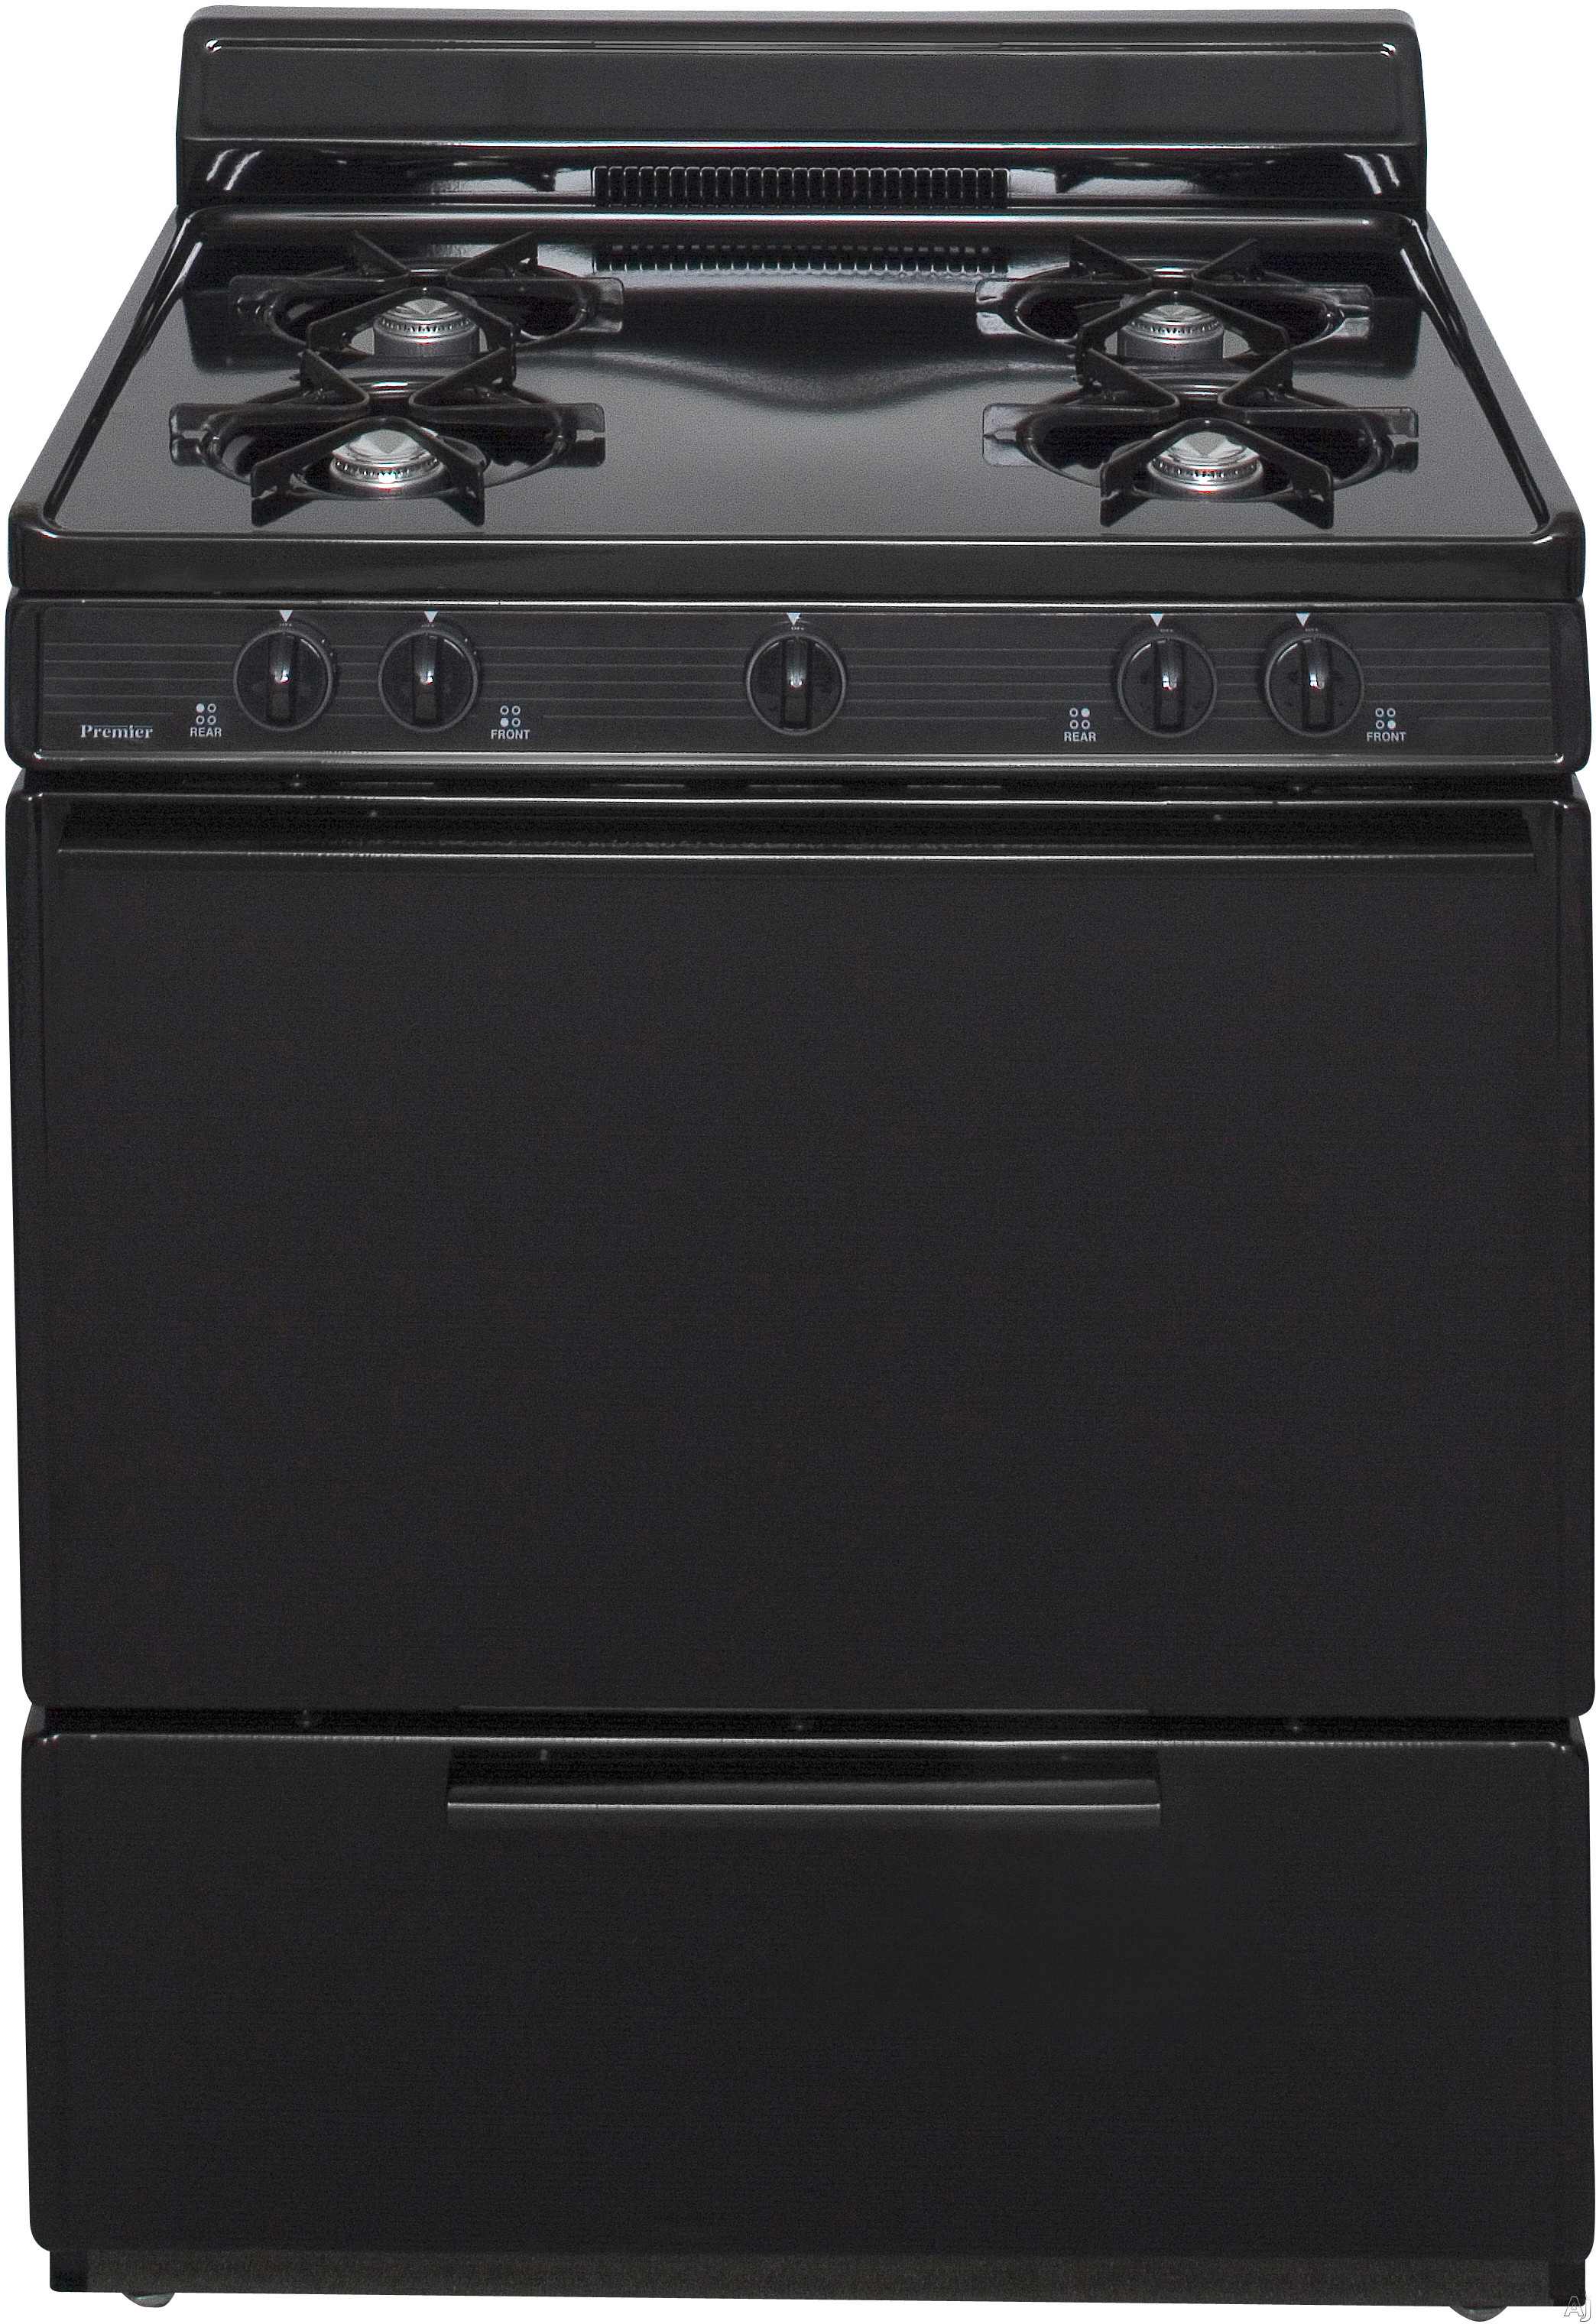 Premier BFK100 30 Inch Freestanding Gas Range with Four 9 100 BTU Burners 39 cu ft Oven Capacity Pull Out Broiler and 4 Inch Porcelain Backguard